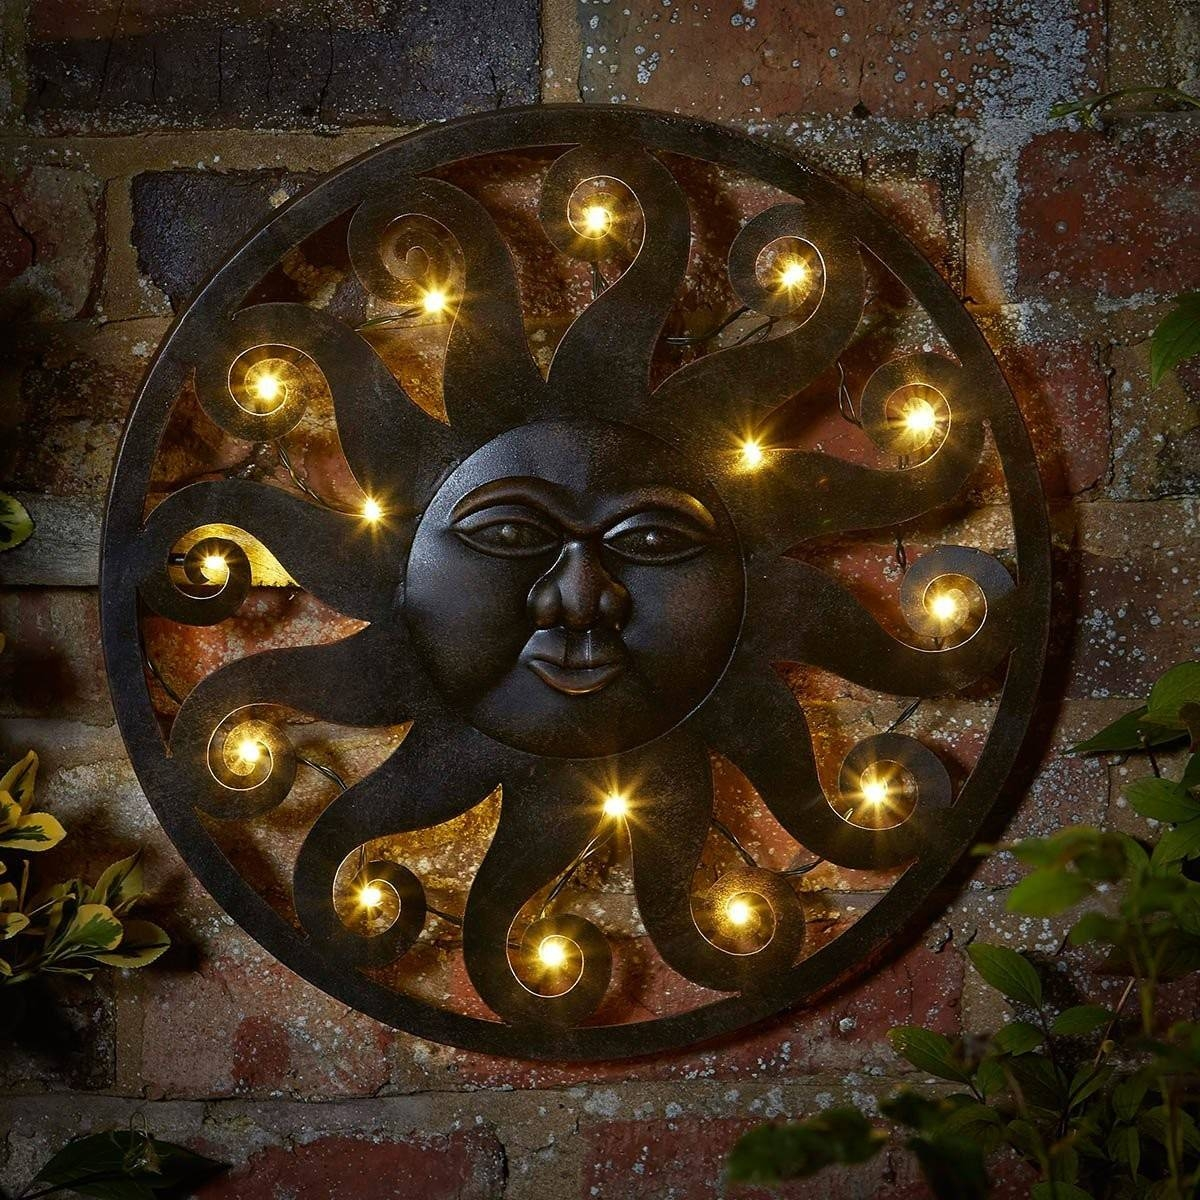 Large Outdoor Metal Wall Art Outdoor Garden Wall Art Outdoor Paint Inside 2017 Outdoor Large Metal : outdoor garden wall art - www.pureclipart.com